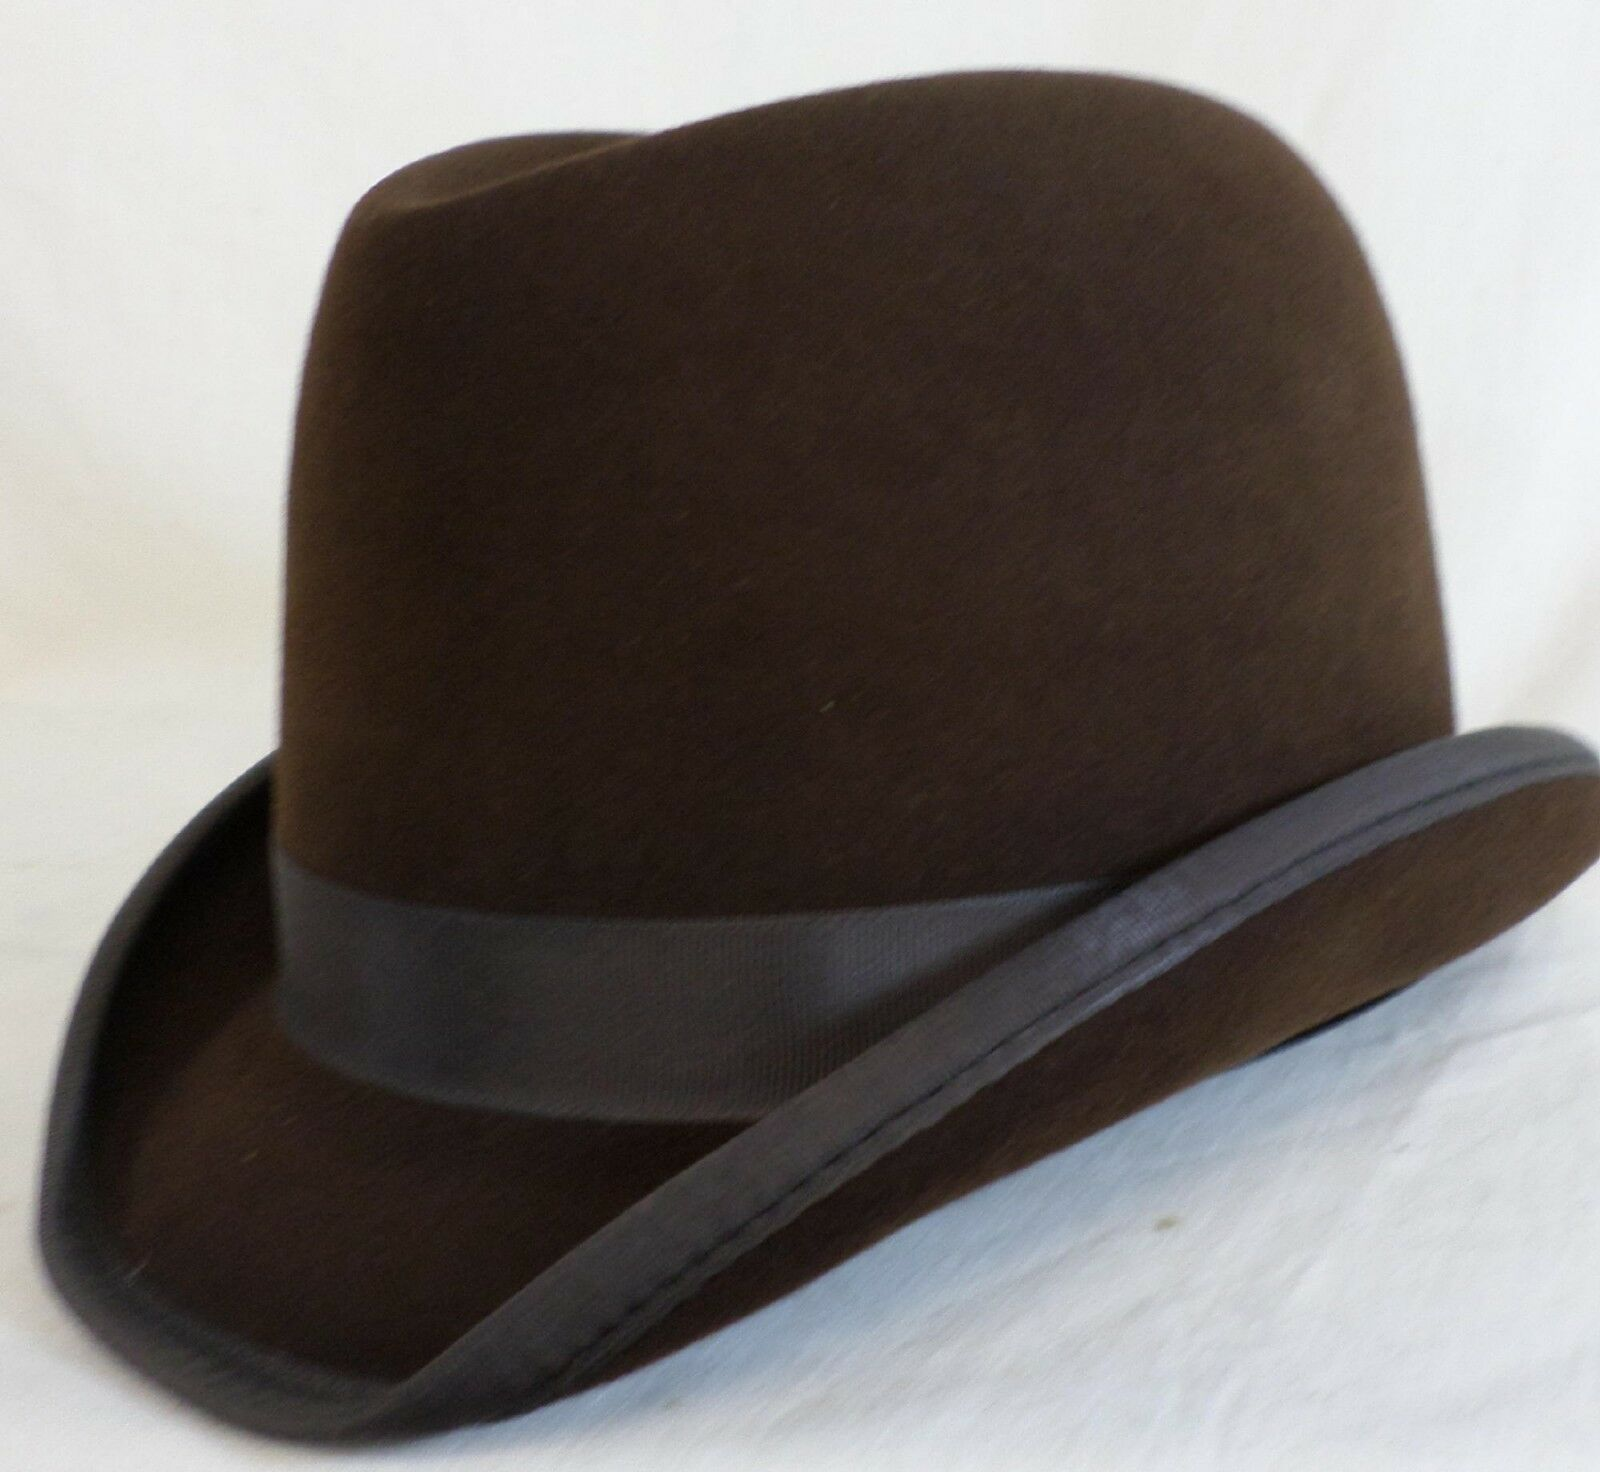 Reed Hill Saddleseat Homburg Hat Marroneee Fur Fur Fur Felt 61 2 - Made In USA 9e1a2b